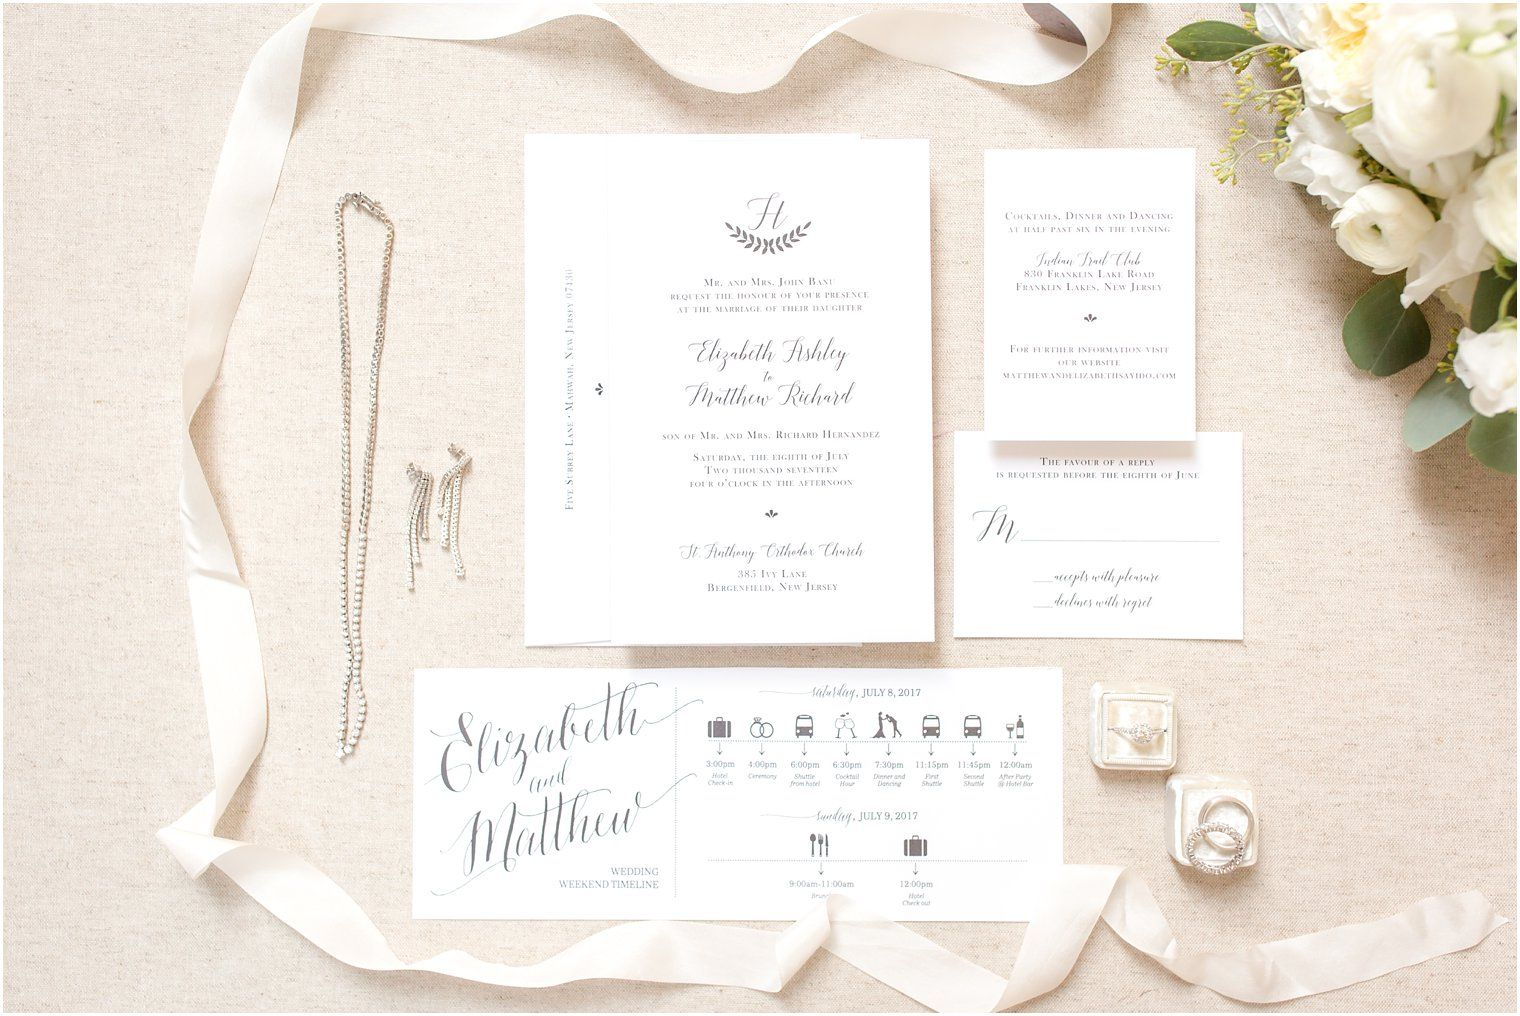 Include Wedding Timeline For Guests Hotel Checkin